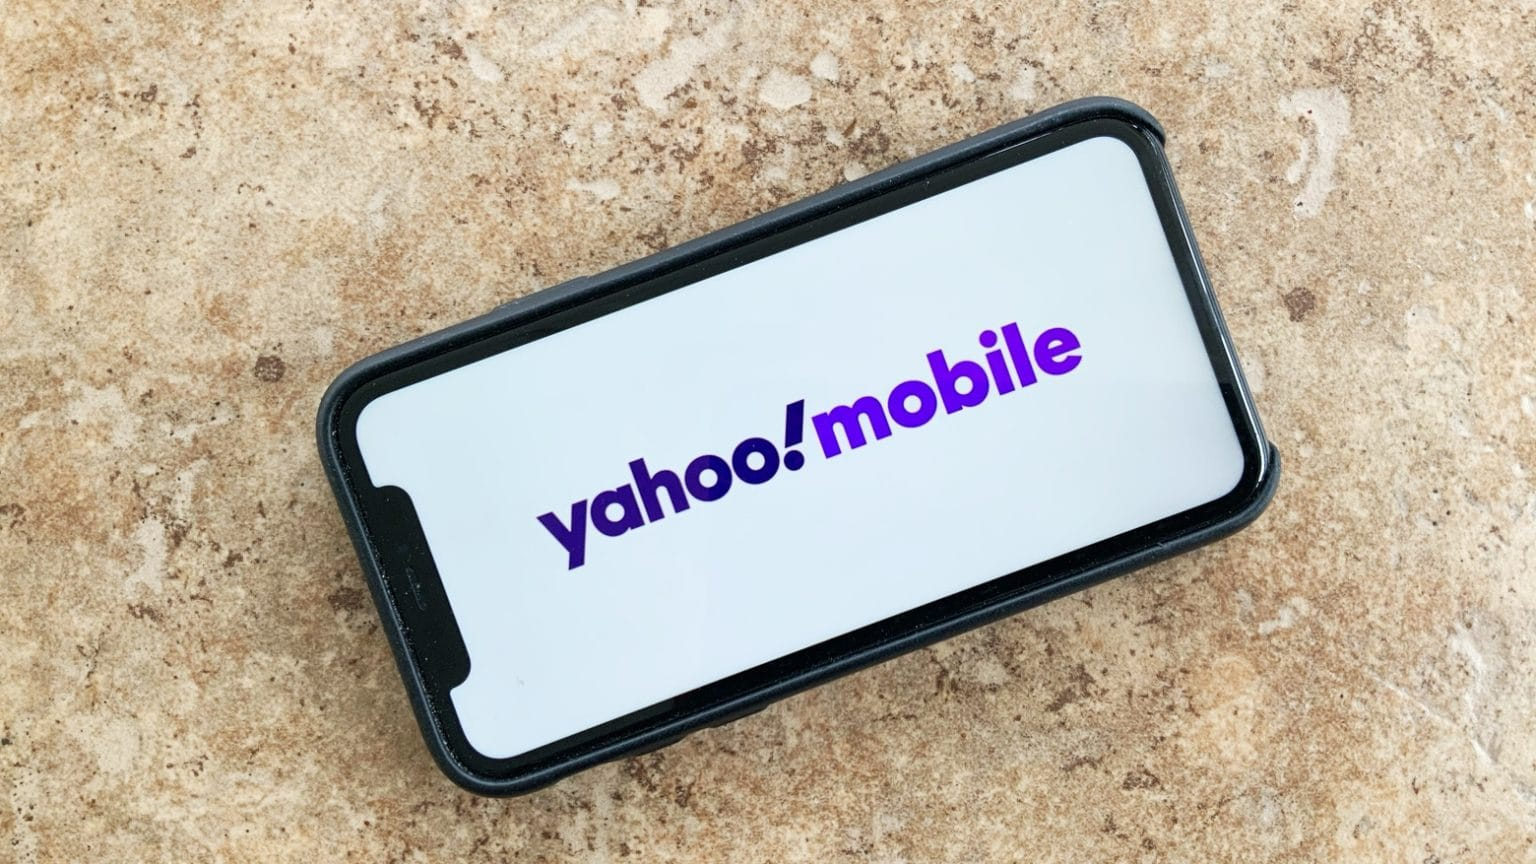 Yahoo Mobile on iPhone 11